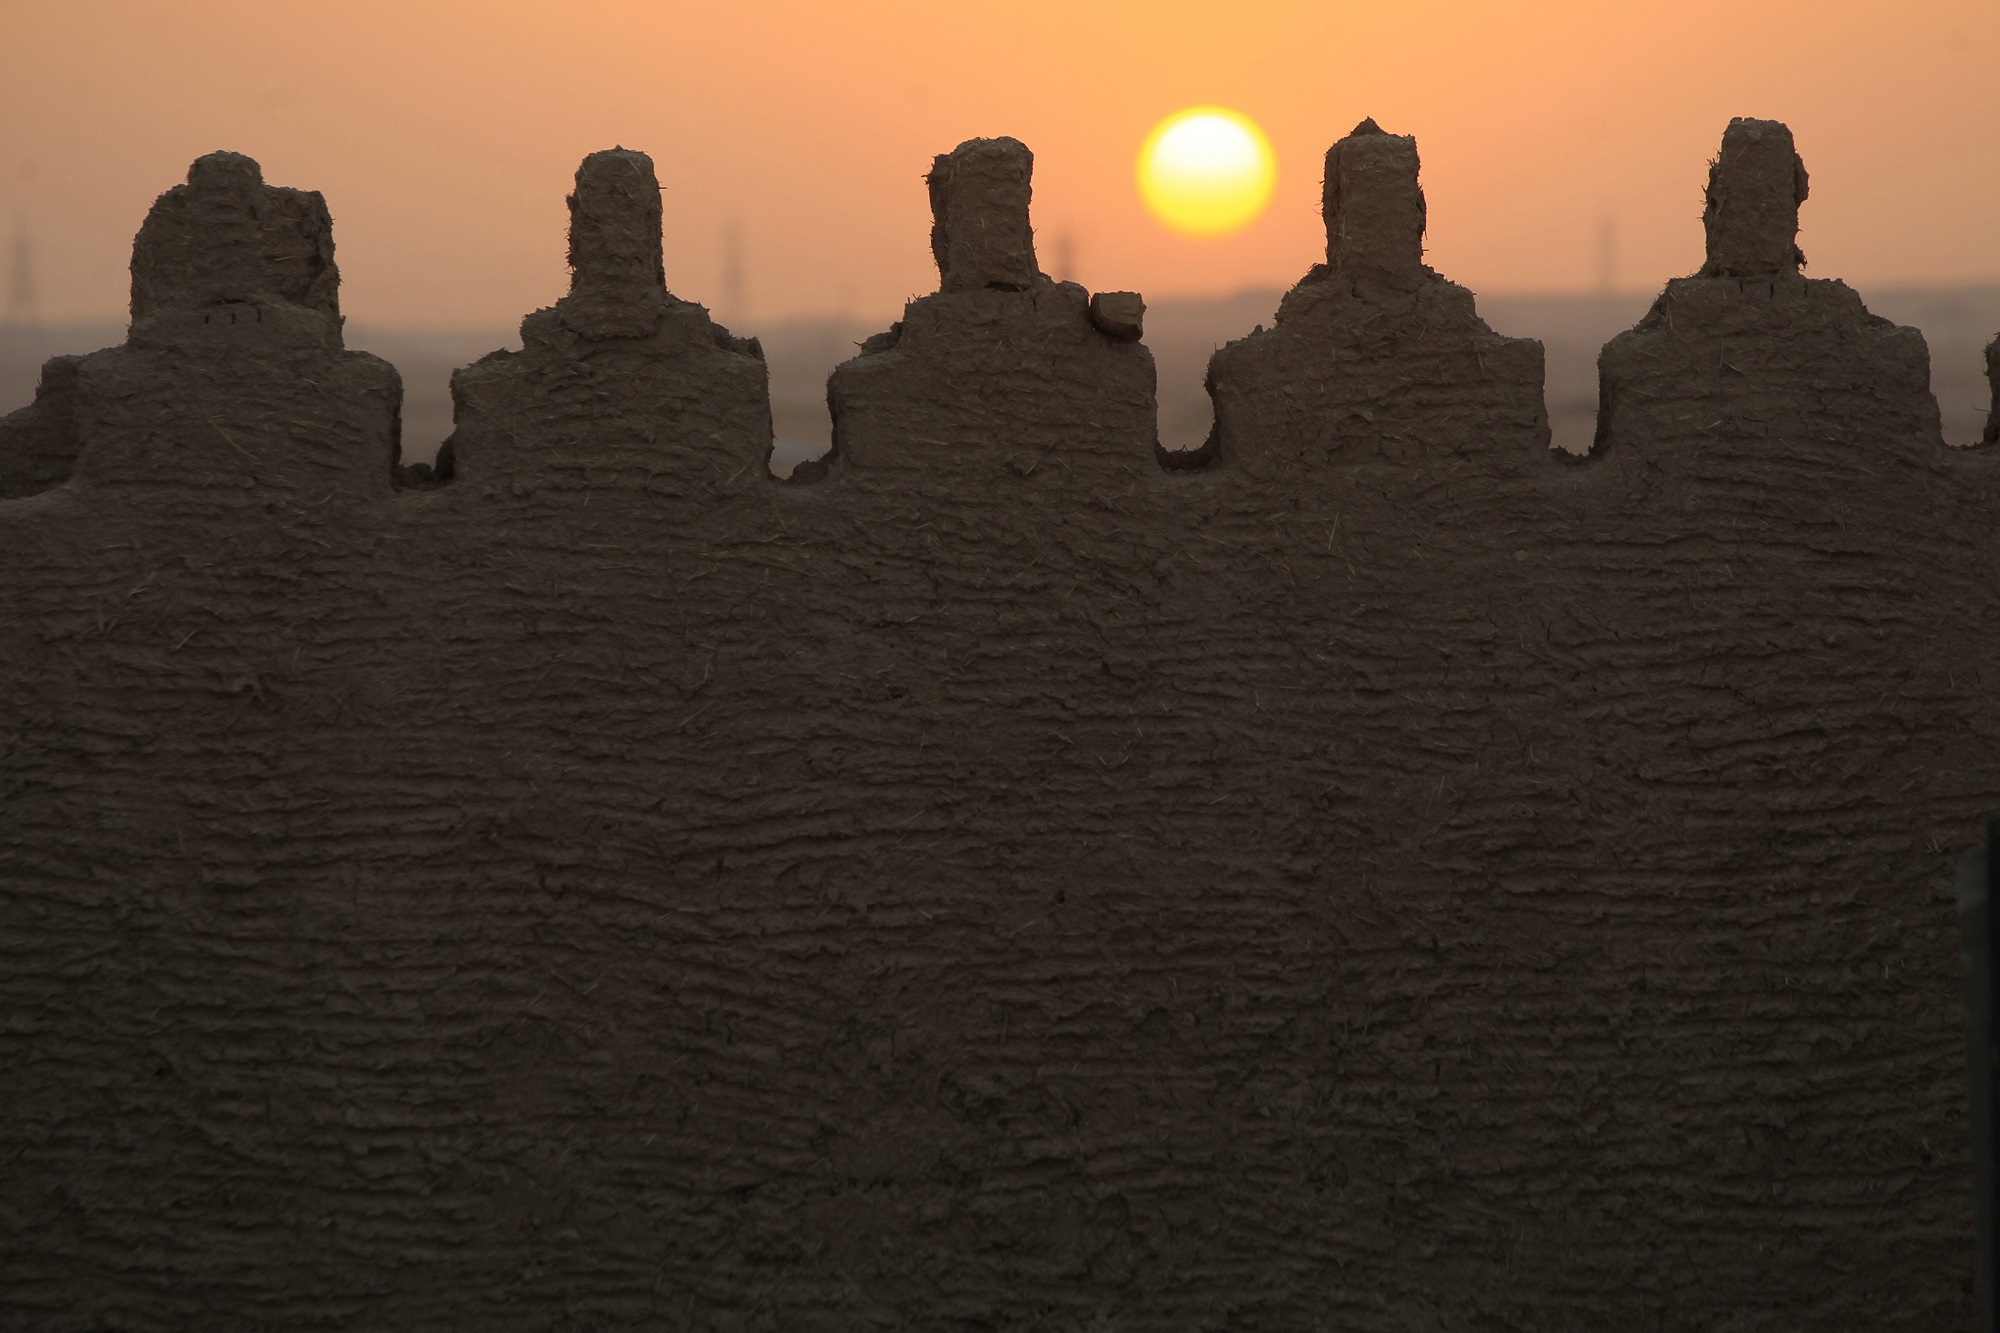 View of the ruins of the city of Diriyah, which are being restored